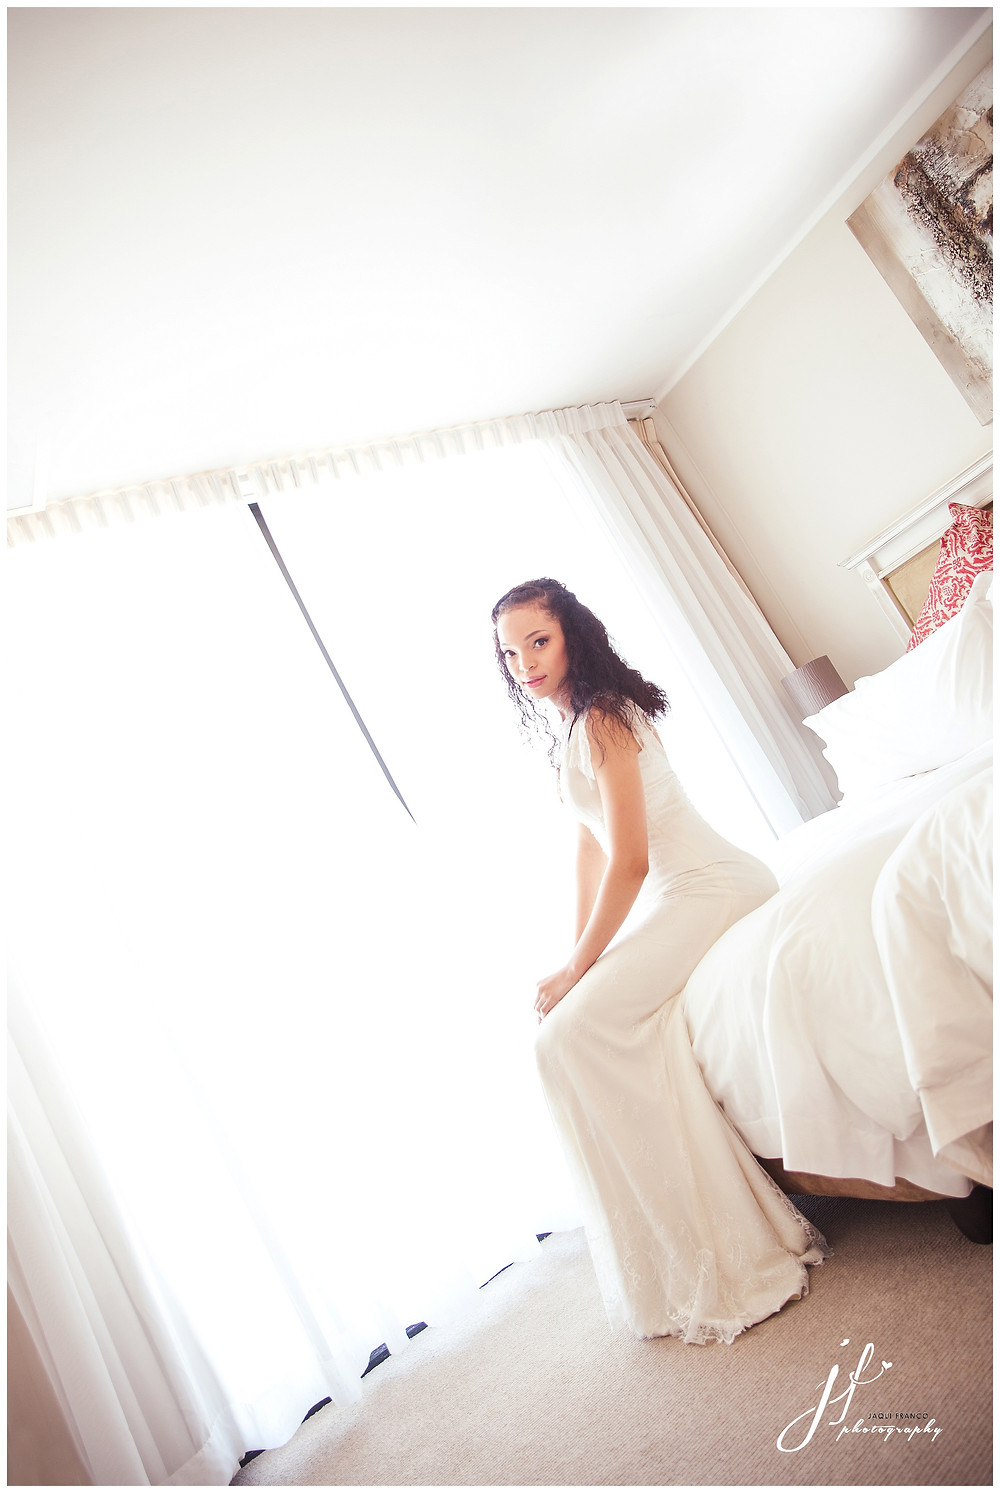 Bridal portrait at Rockwell Suites Hotel Cape Town